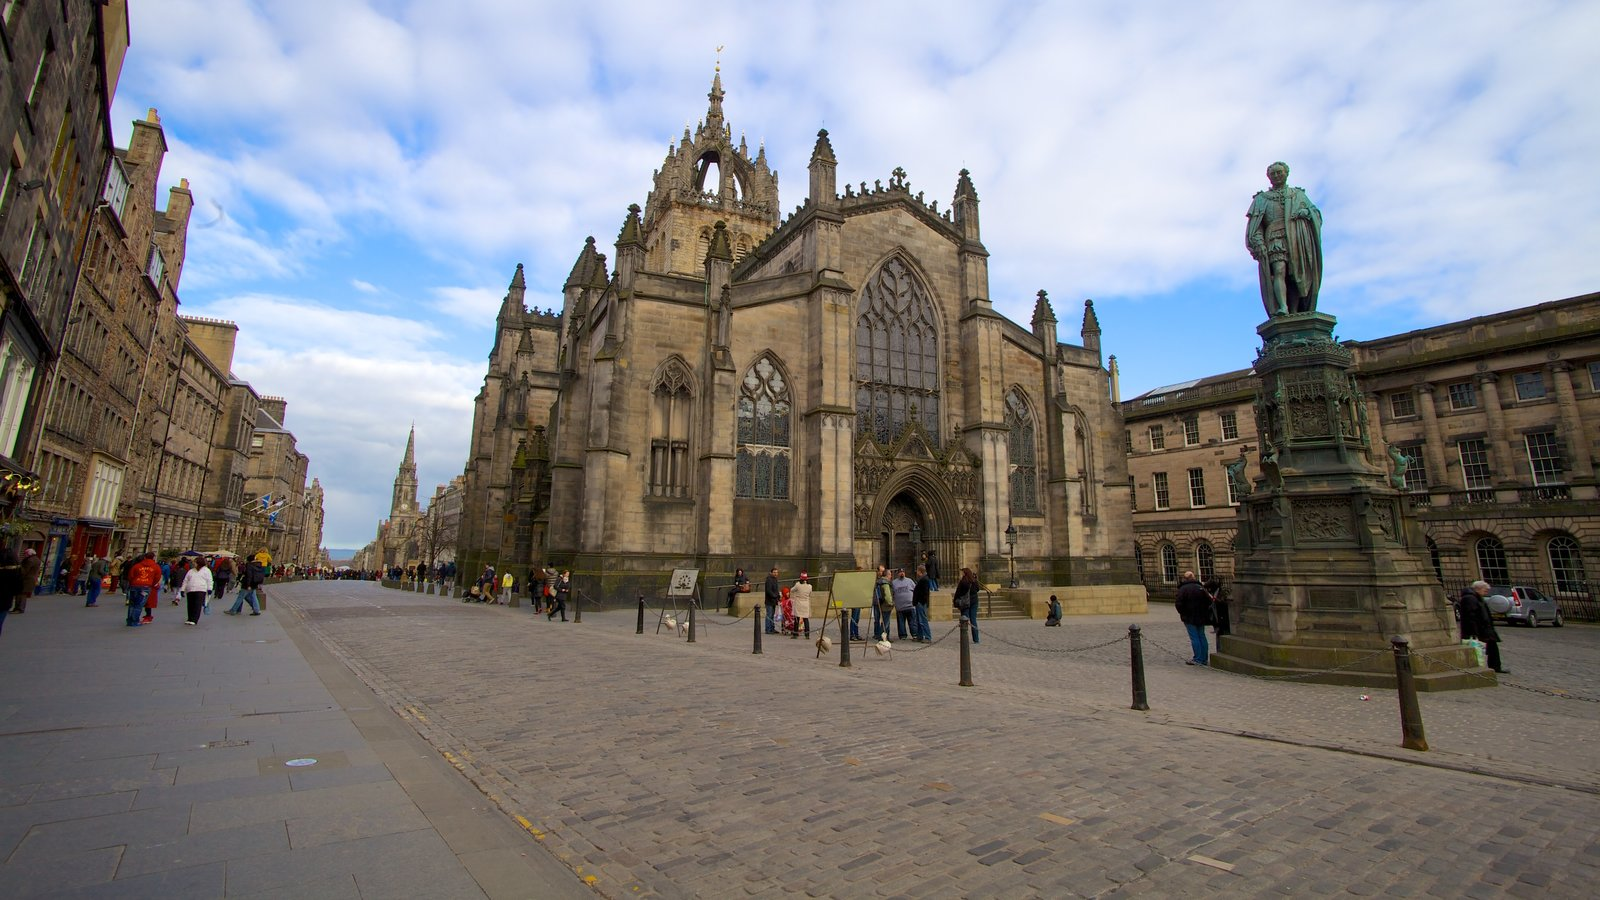 St. Giles\\\' Cathedral which includes a square or plaza, a church or cathedral and street scenes